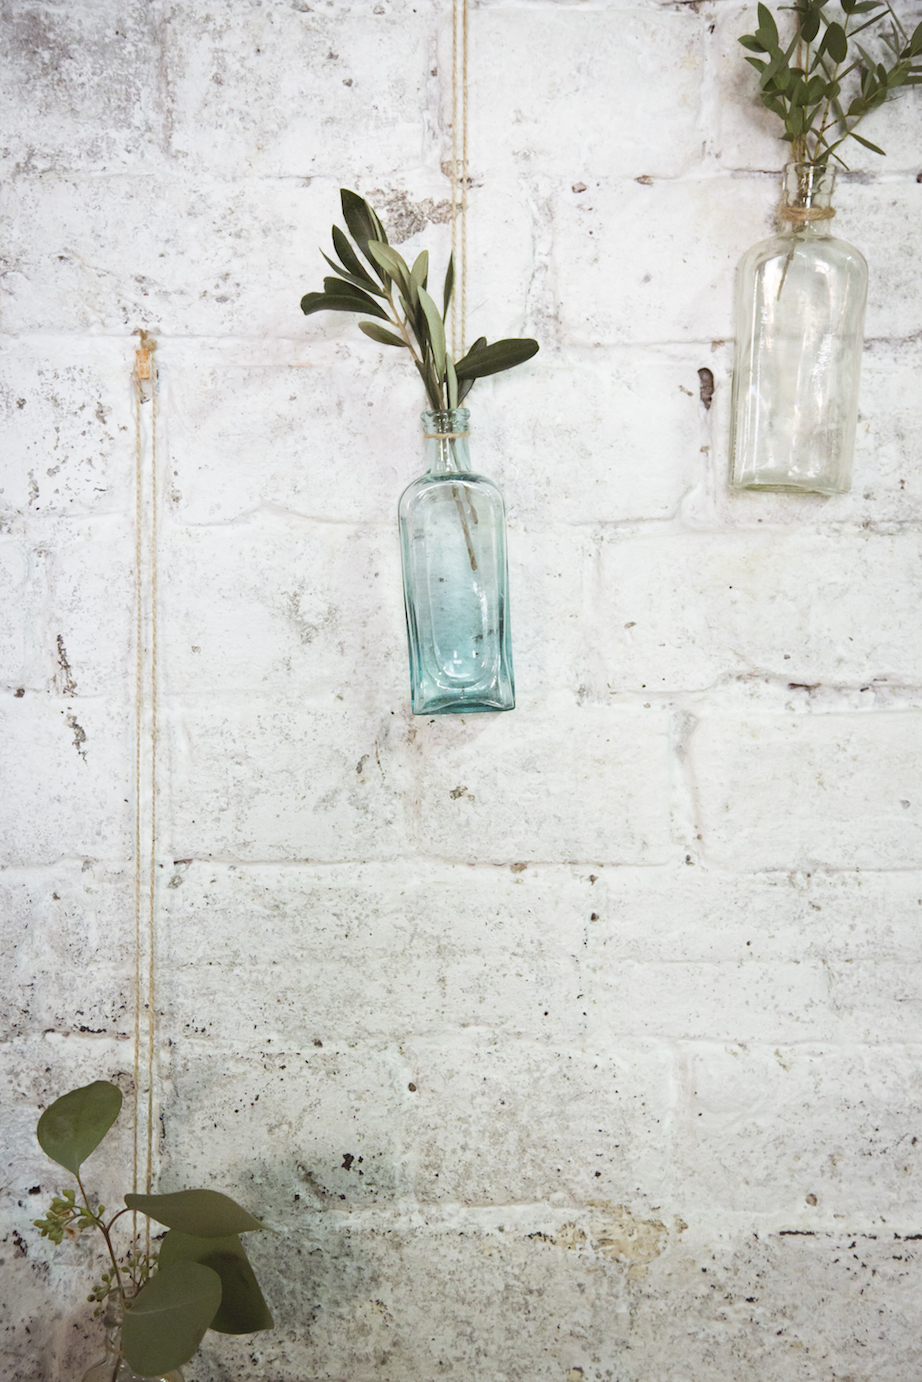 hanging flowers, apothecary bottles with olive foliage